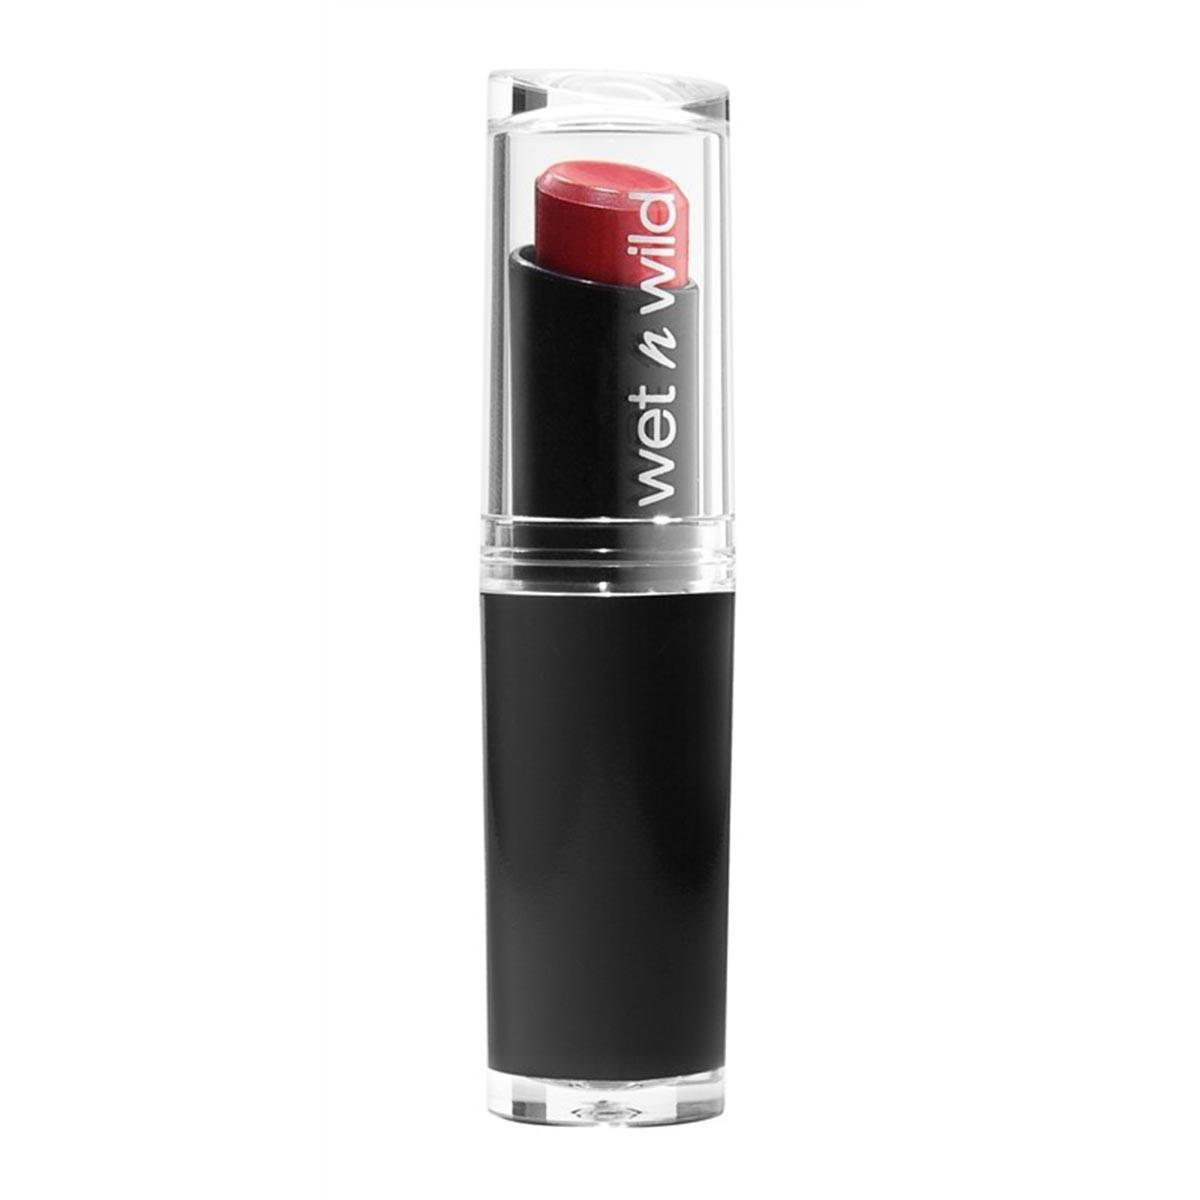 Wet n wild fragrances Megalast Lip Color Spiked With Rum